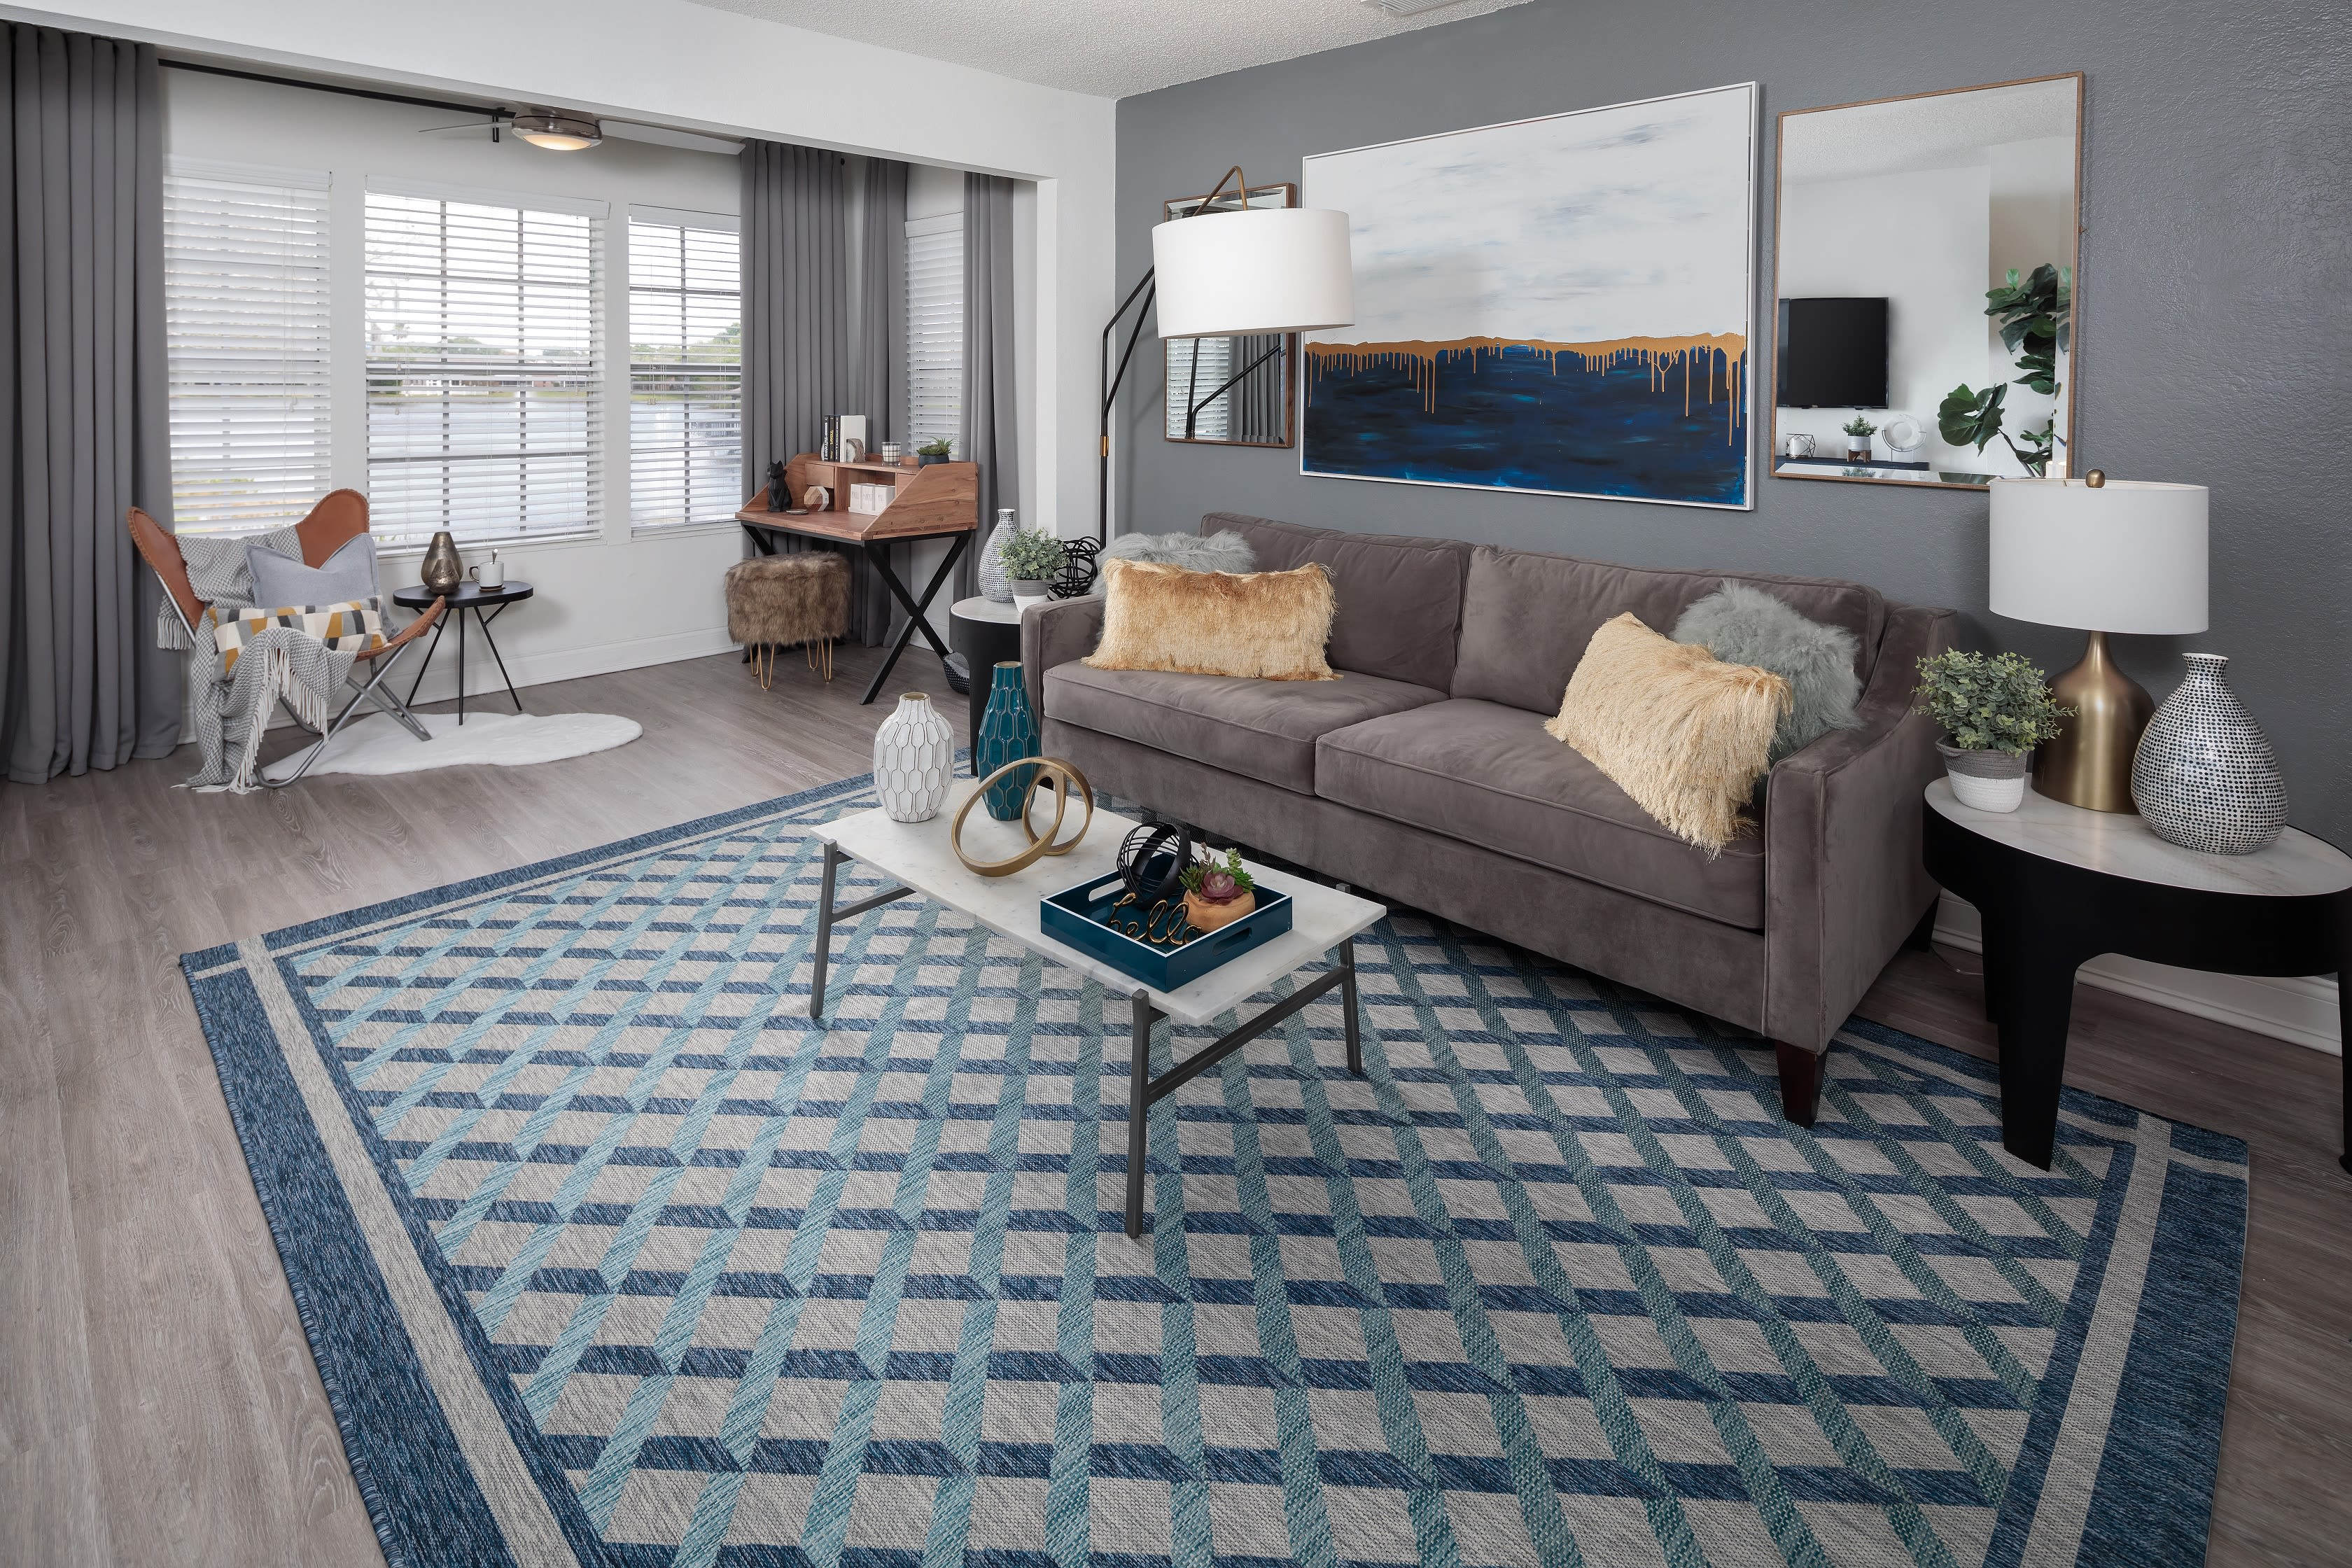 View virtual tour of 1 bedroom 1 bathroom home at Fairways at Feather Sound in Clearwater, Florida